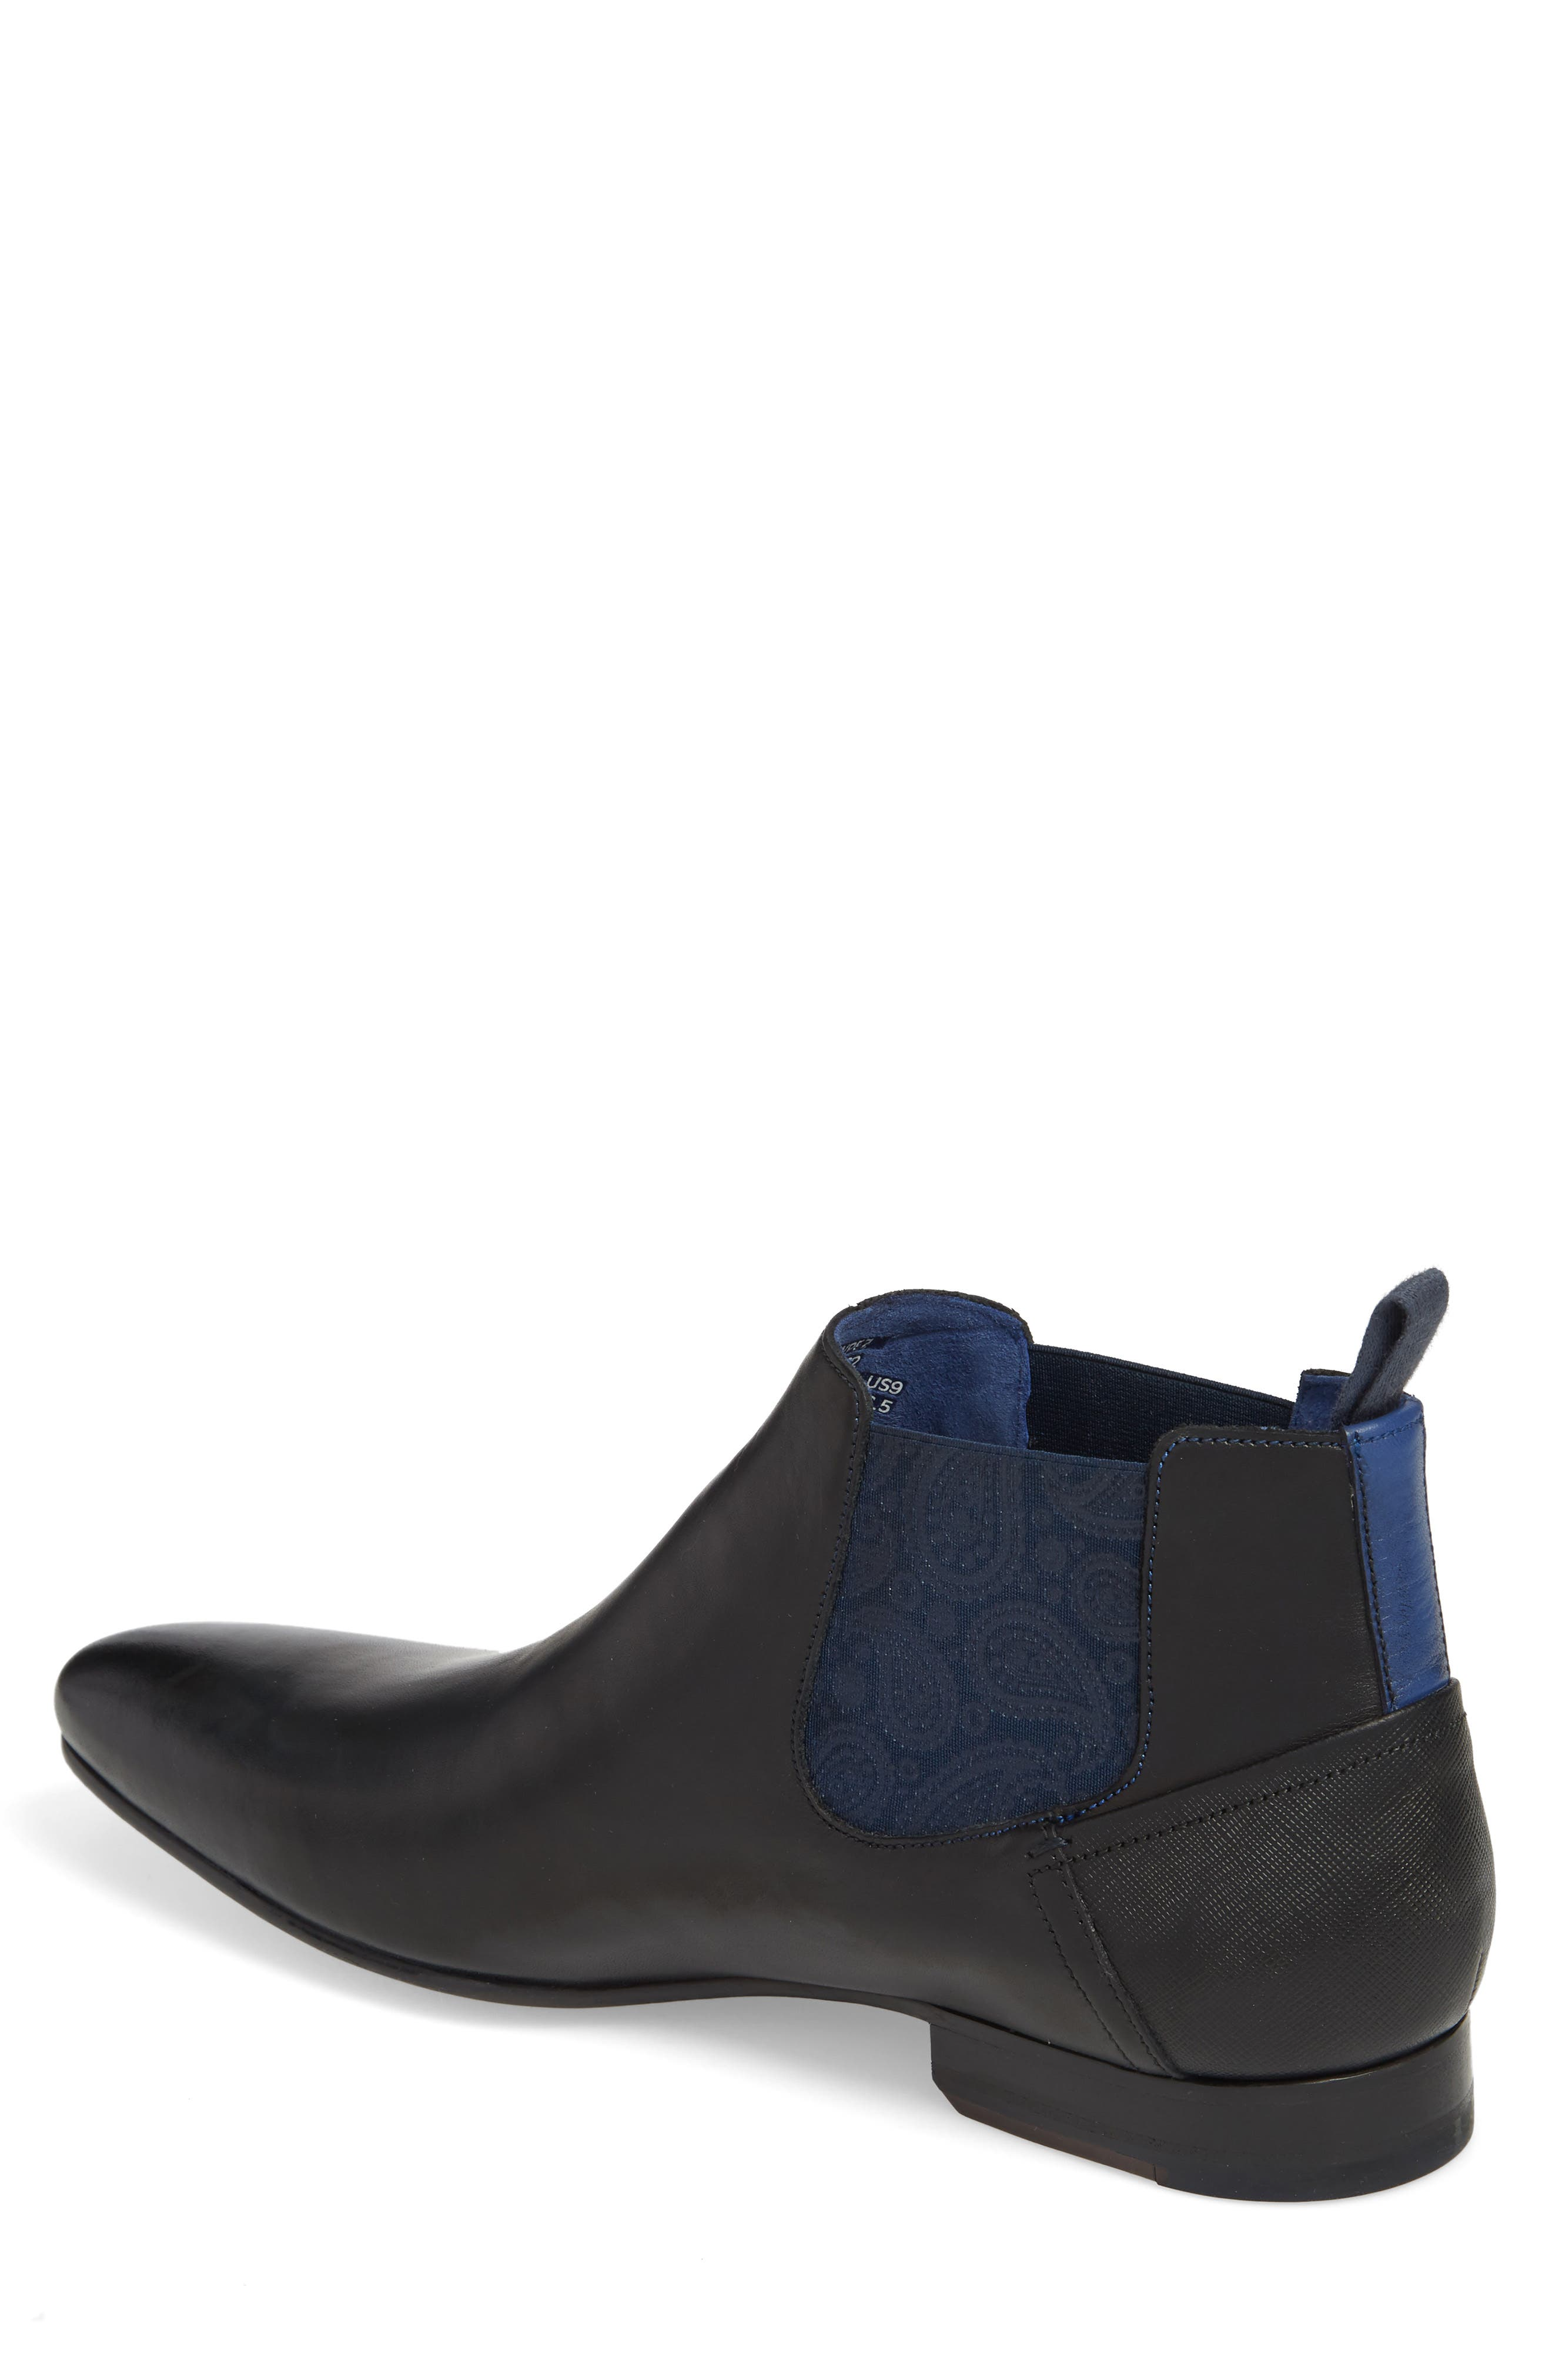 Lowpez Mid Chelsea Boot,                             Alternate thumbnail 2, color,                             001